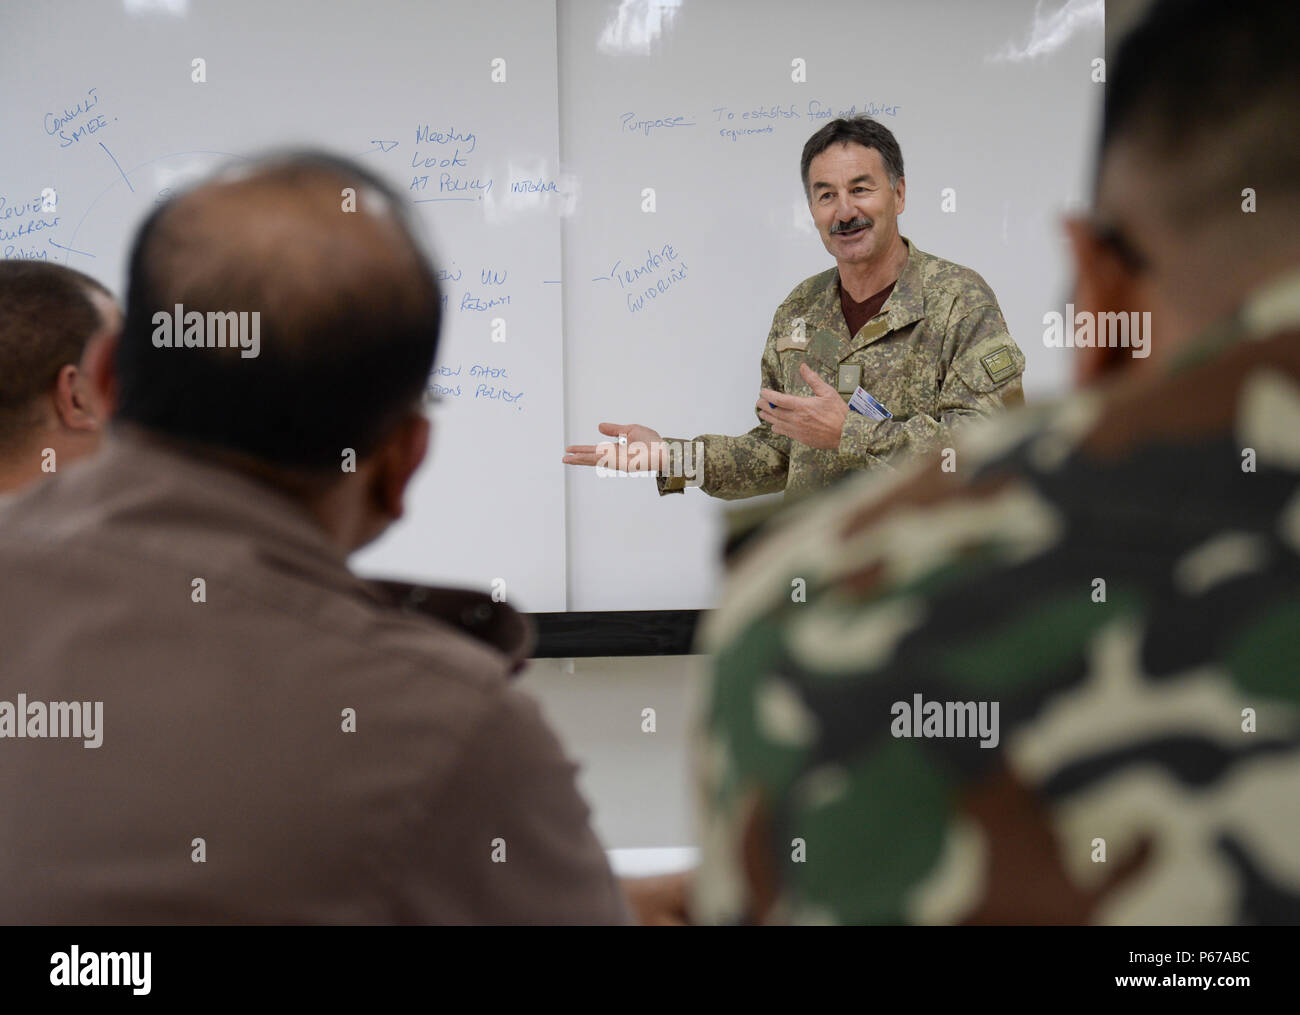 160525-N-GI544-100 PANCHKHAL, Nepal (May 25, 2016) – Maj. Jim Josephs, assigned to J5-H Joint Operational Health Group, New Zealand Defense Force, speaks during a seminar on force health protection in peacekeeping operations between the U.S., New Zealand, Nepalese and Bangladeshi military medical professionals at the Birendra Peace Operations Training Center in Panchkhal, Nepal.  The seminar was formed to enhance force medicine practices within the U.S. military as well as share and collaborate with partner nations across the Indo-Asia-Pacific region. (U.S. Navy photo by Mass Communication Spe Stock Photo